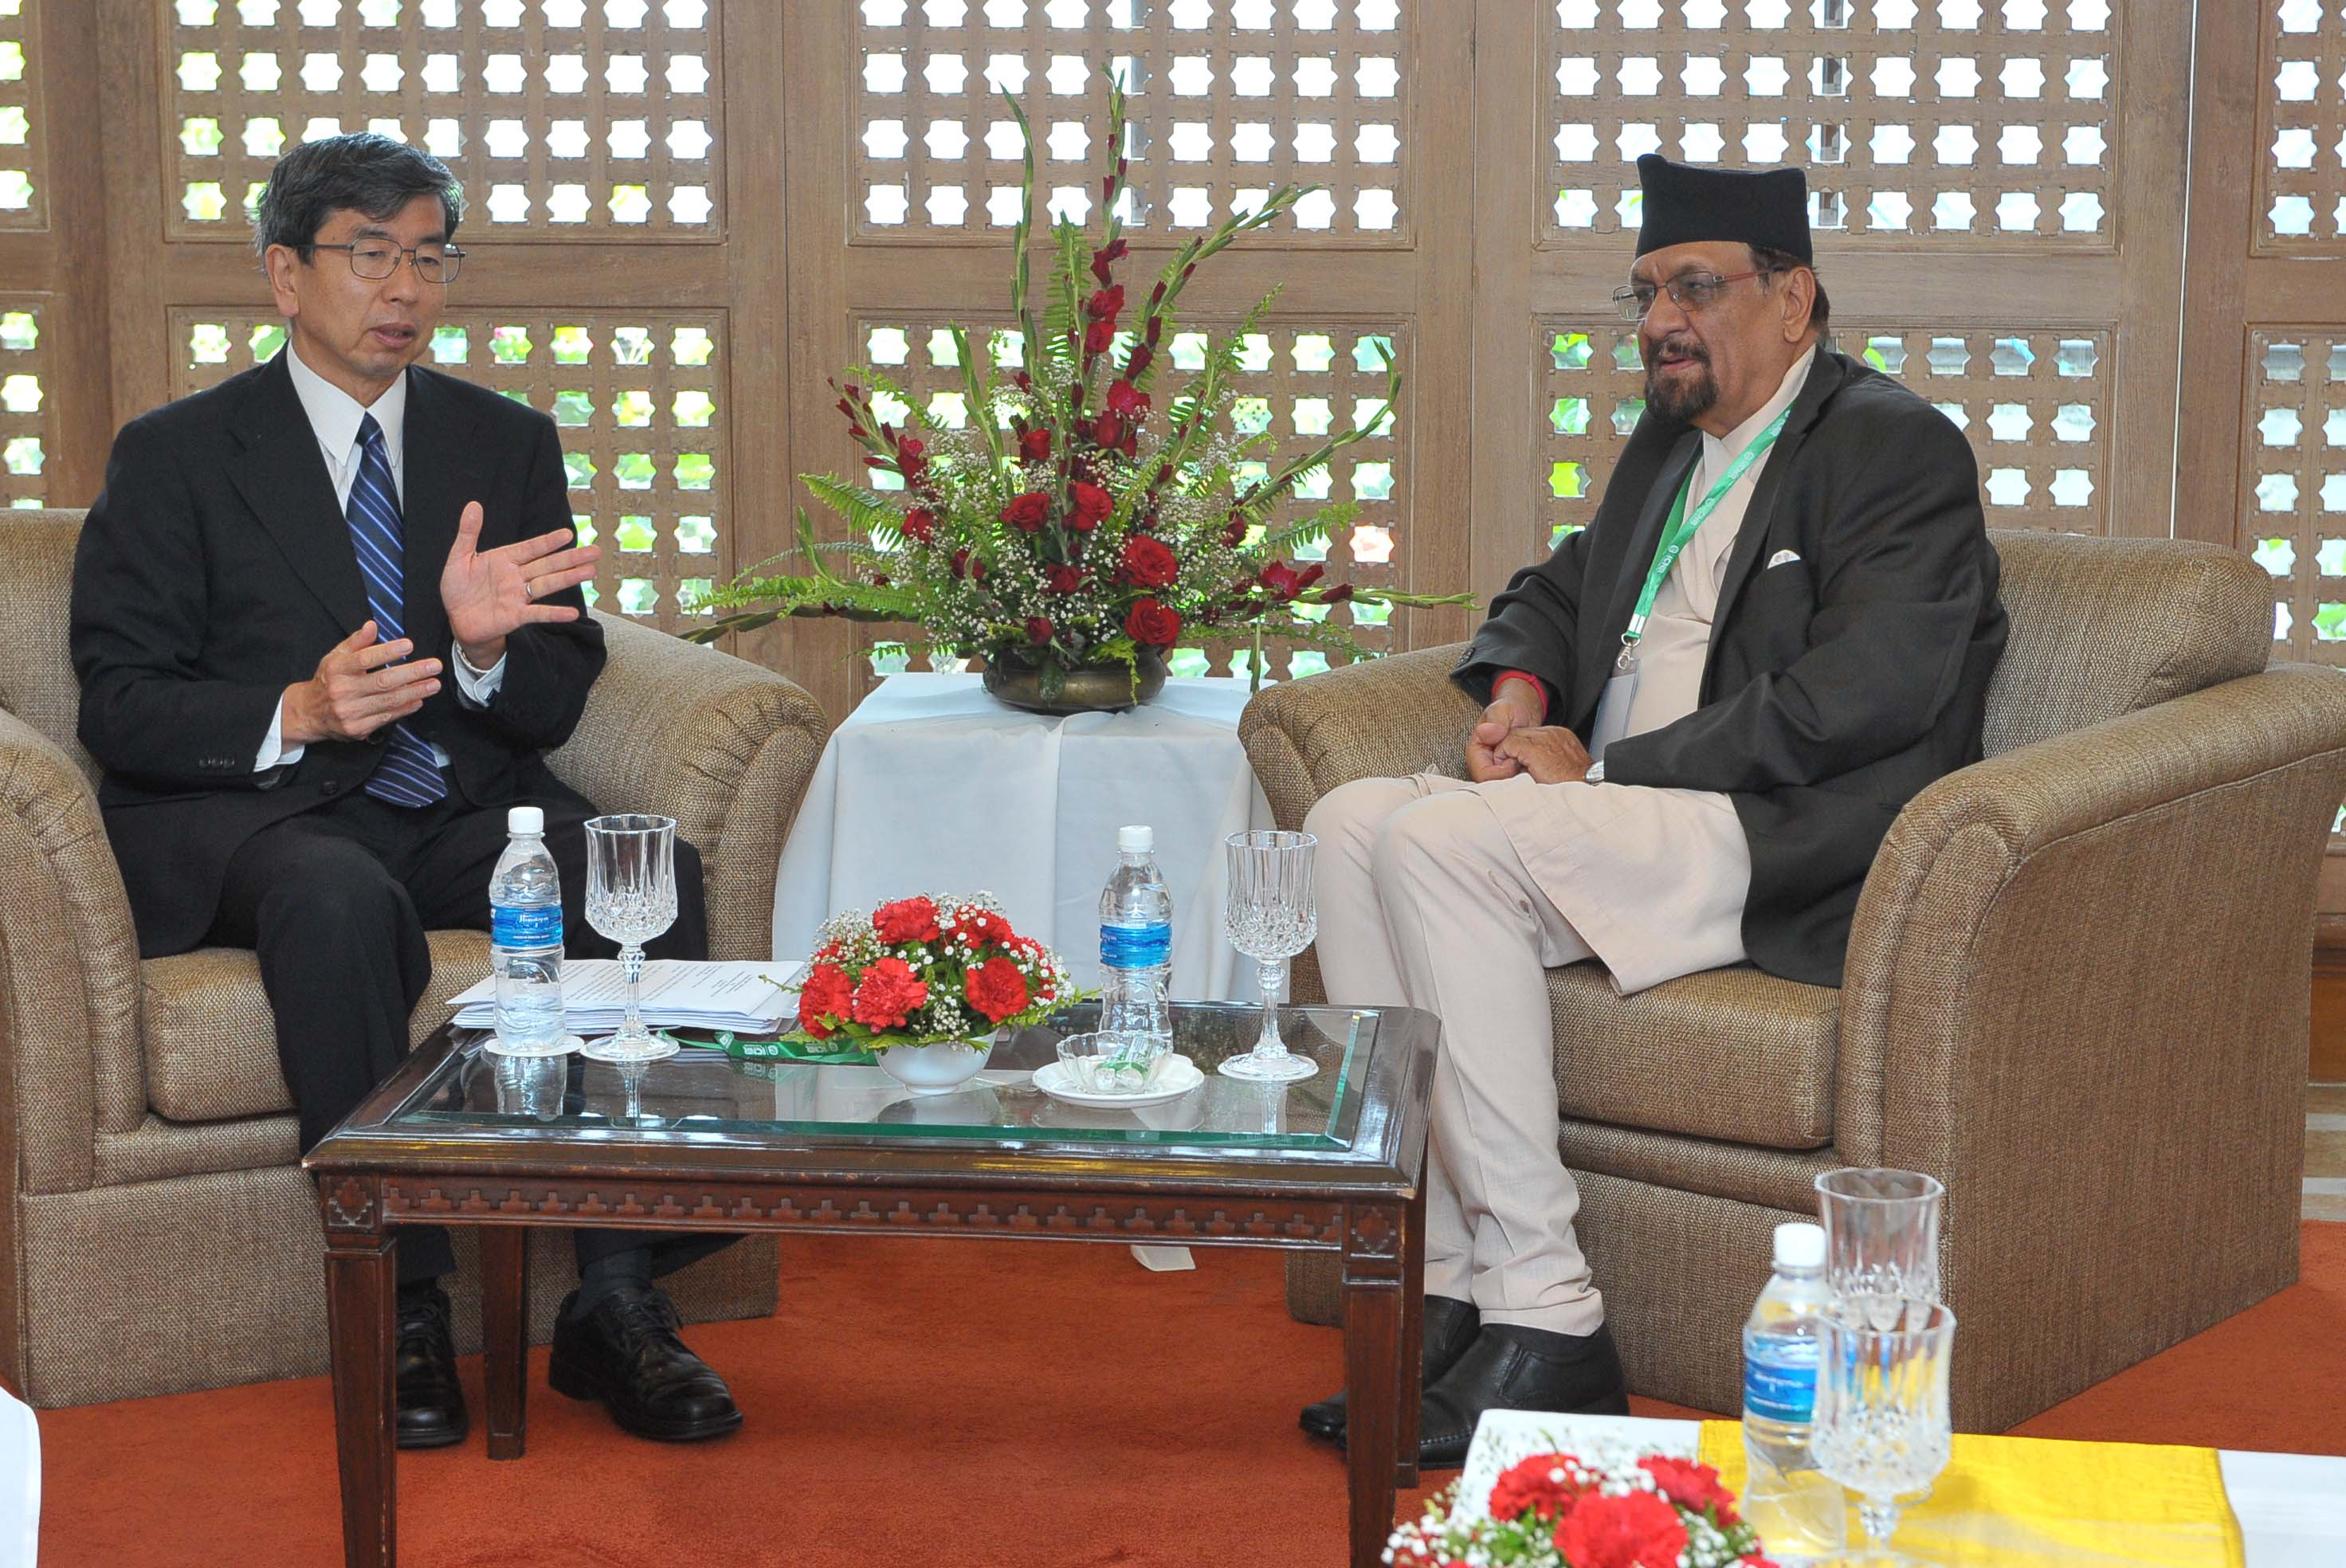 June 25-ADB Prez with FM of Nepal Dr. Ramsharan Mahat